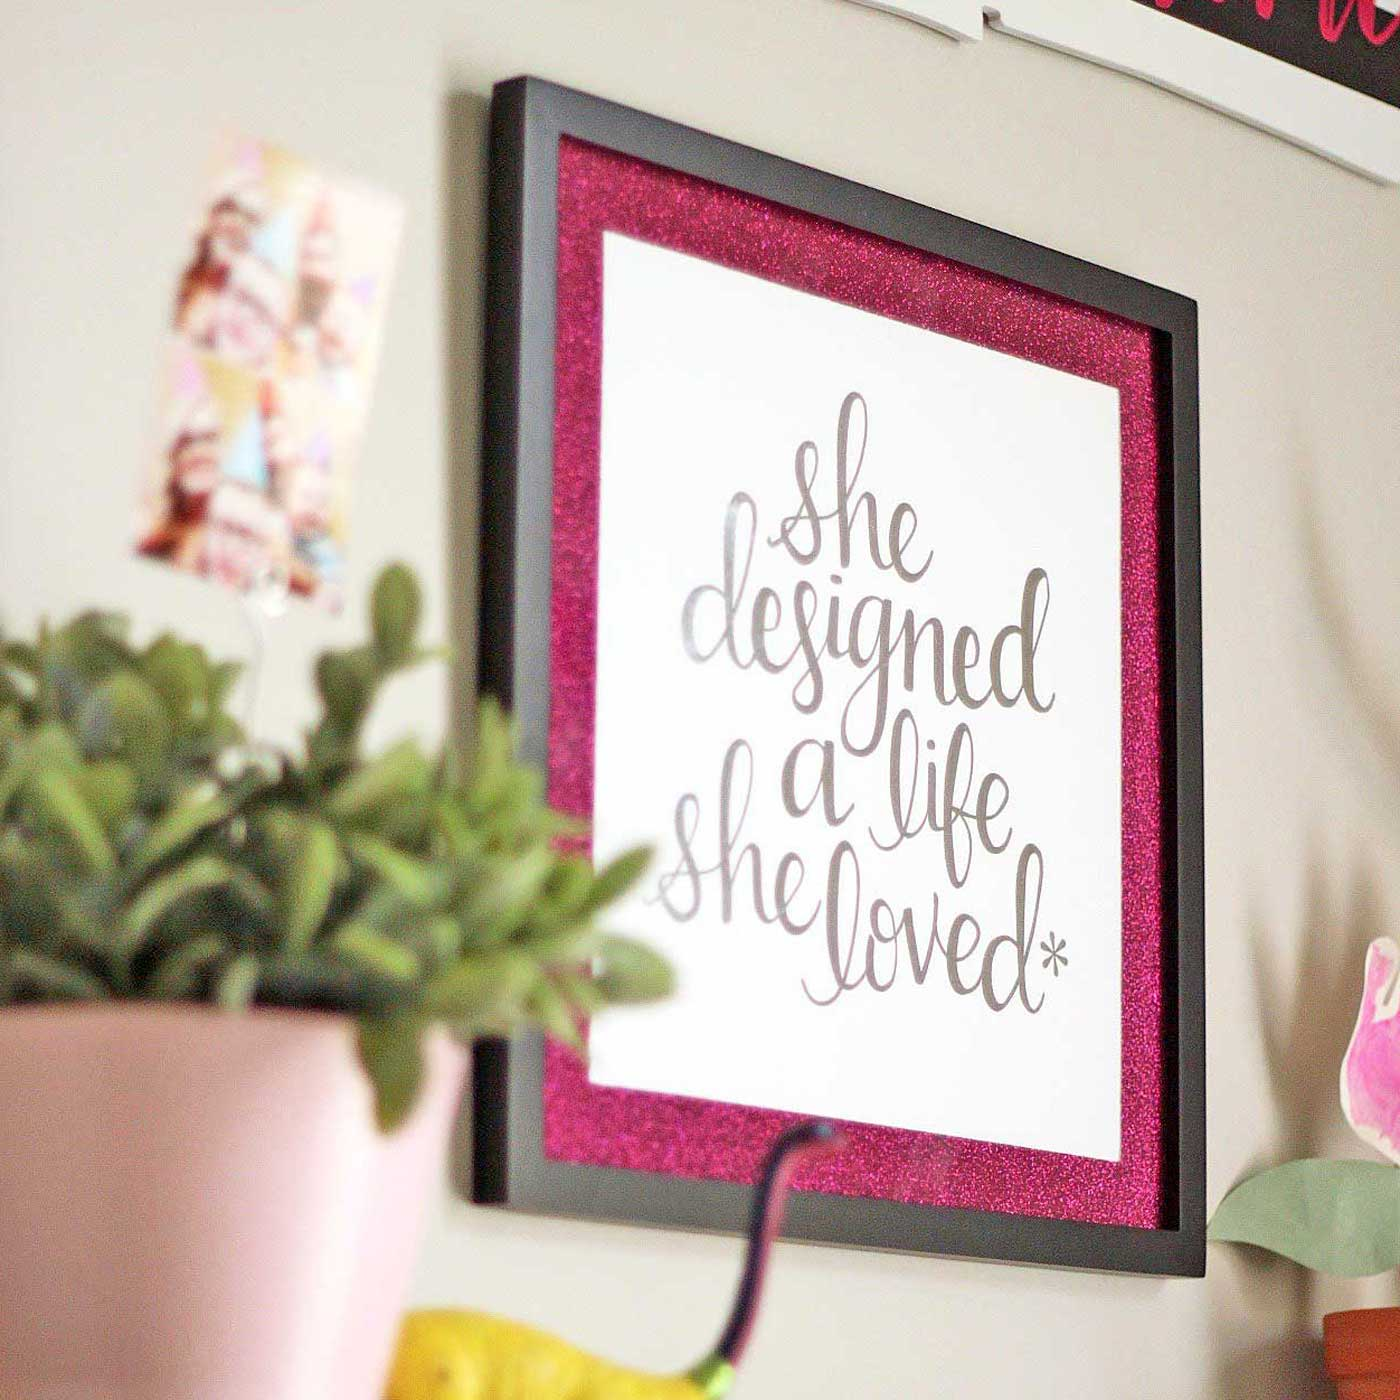 Easy & Inexpensive DIY Picture Frame Mats from Glitter Cardstock   Where The Smiles Have Been